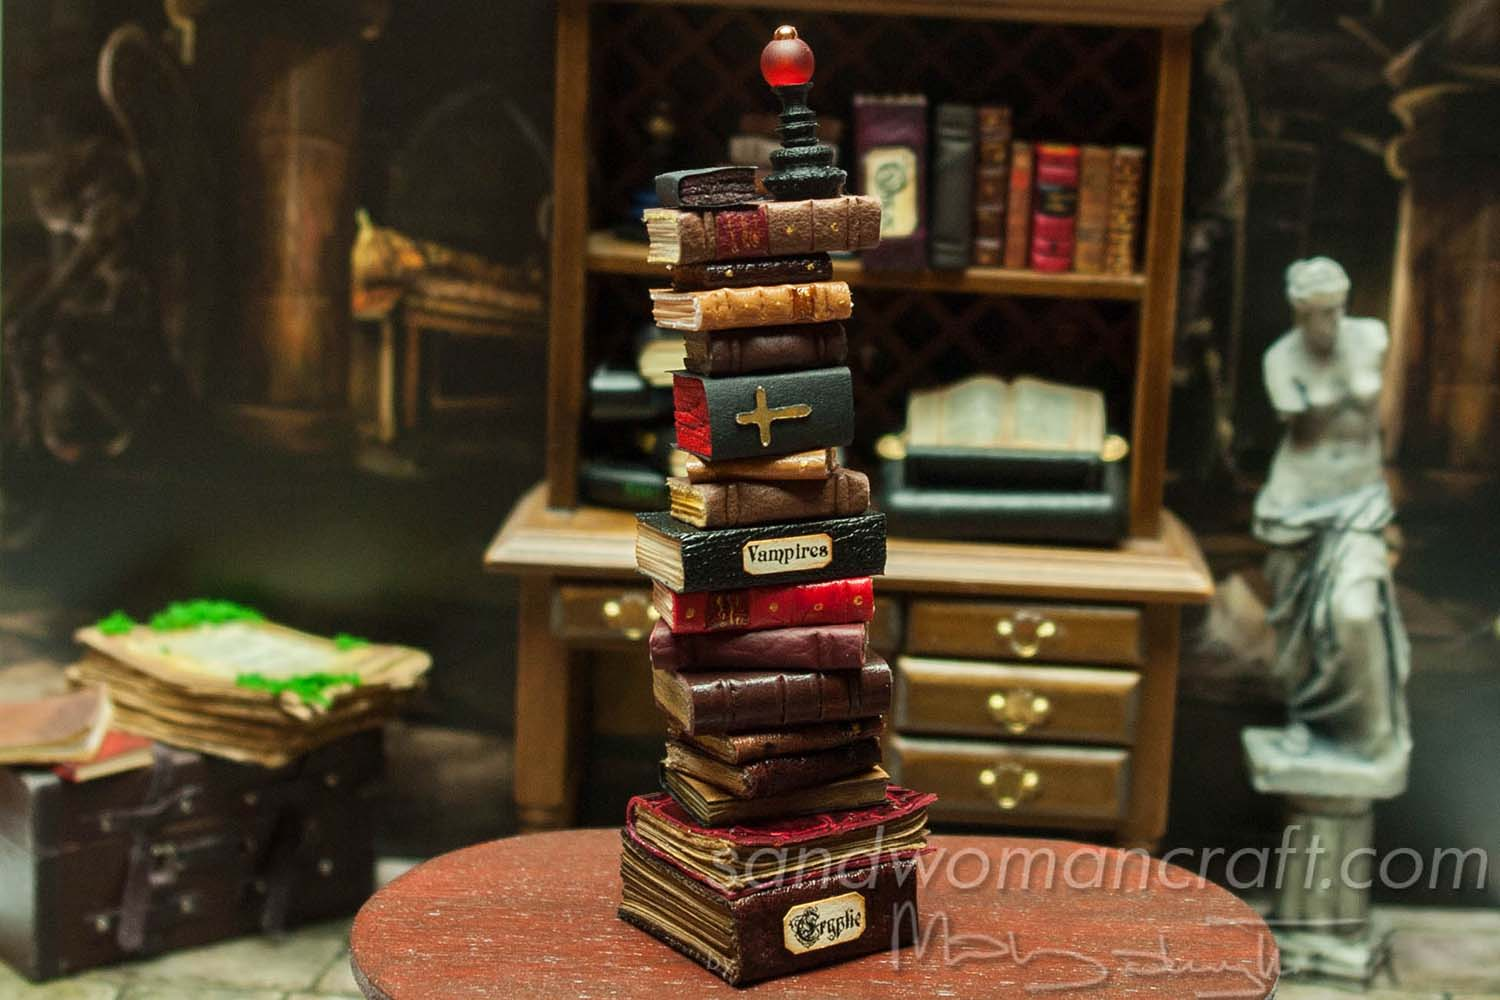 Miniature books stacked in 1:12 scale